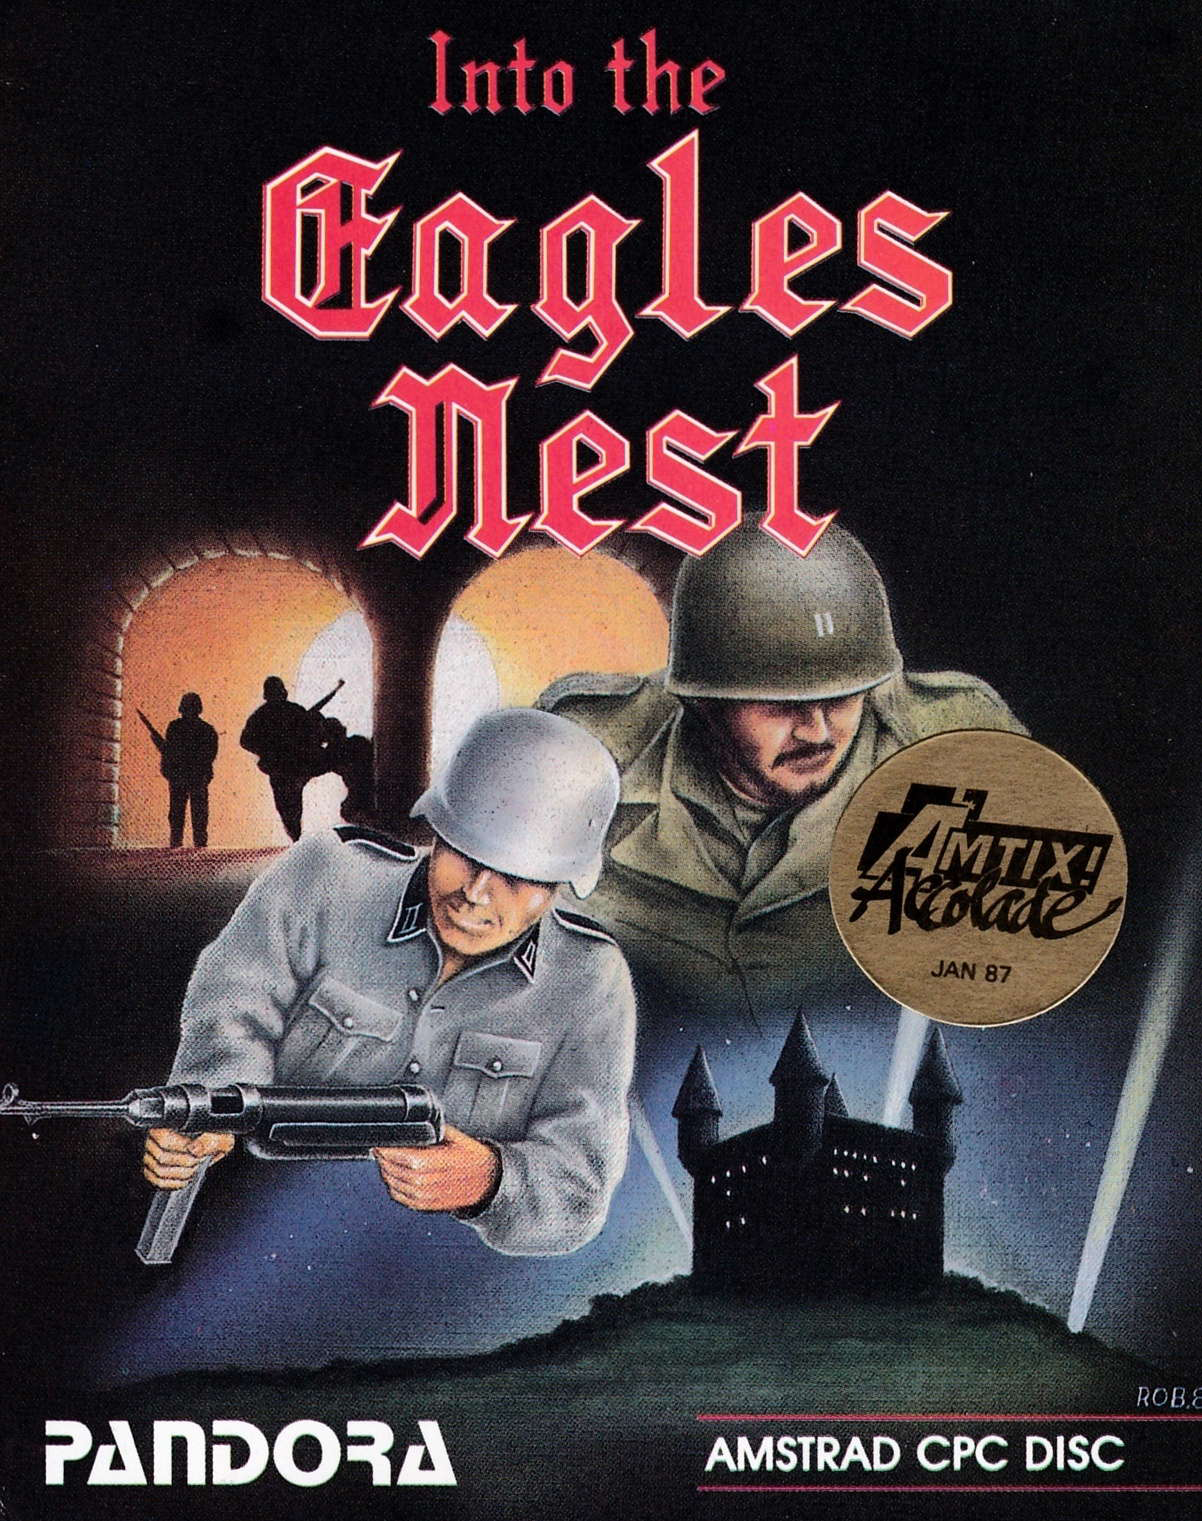 screenshot of the Amstrad CPC game Into the Eagle's Nest by GameBase CPC